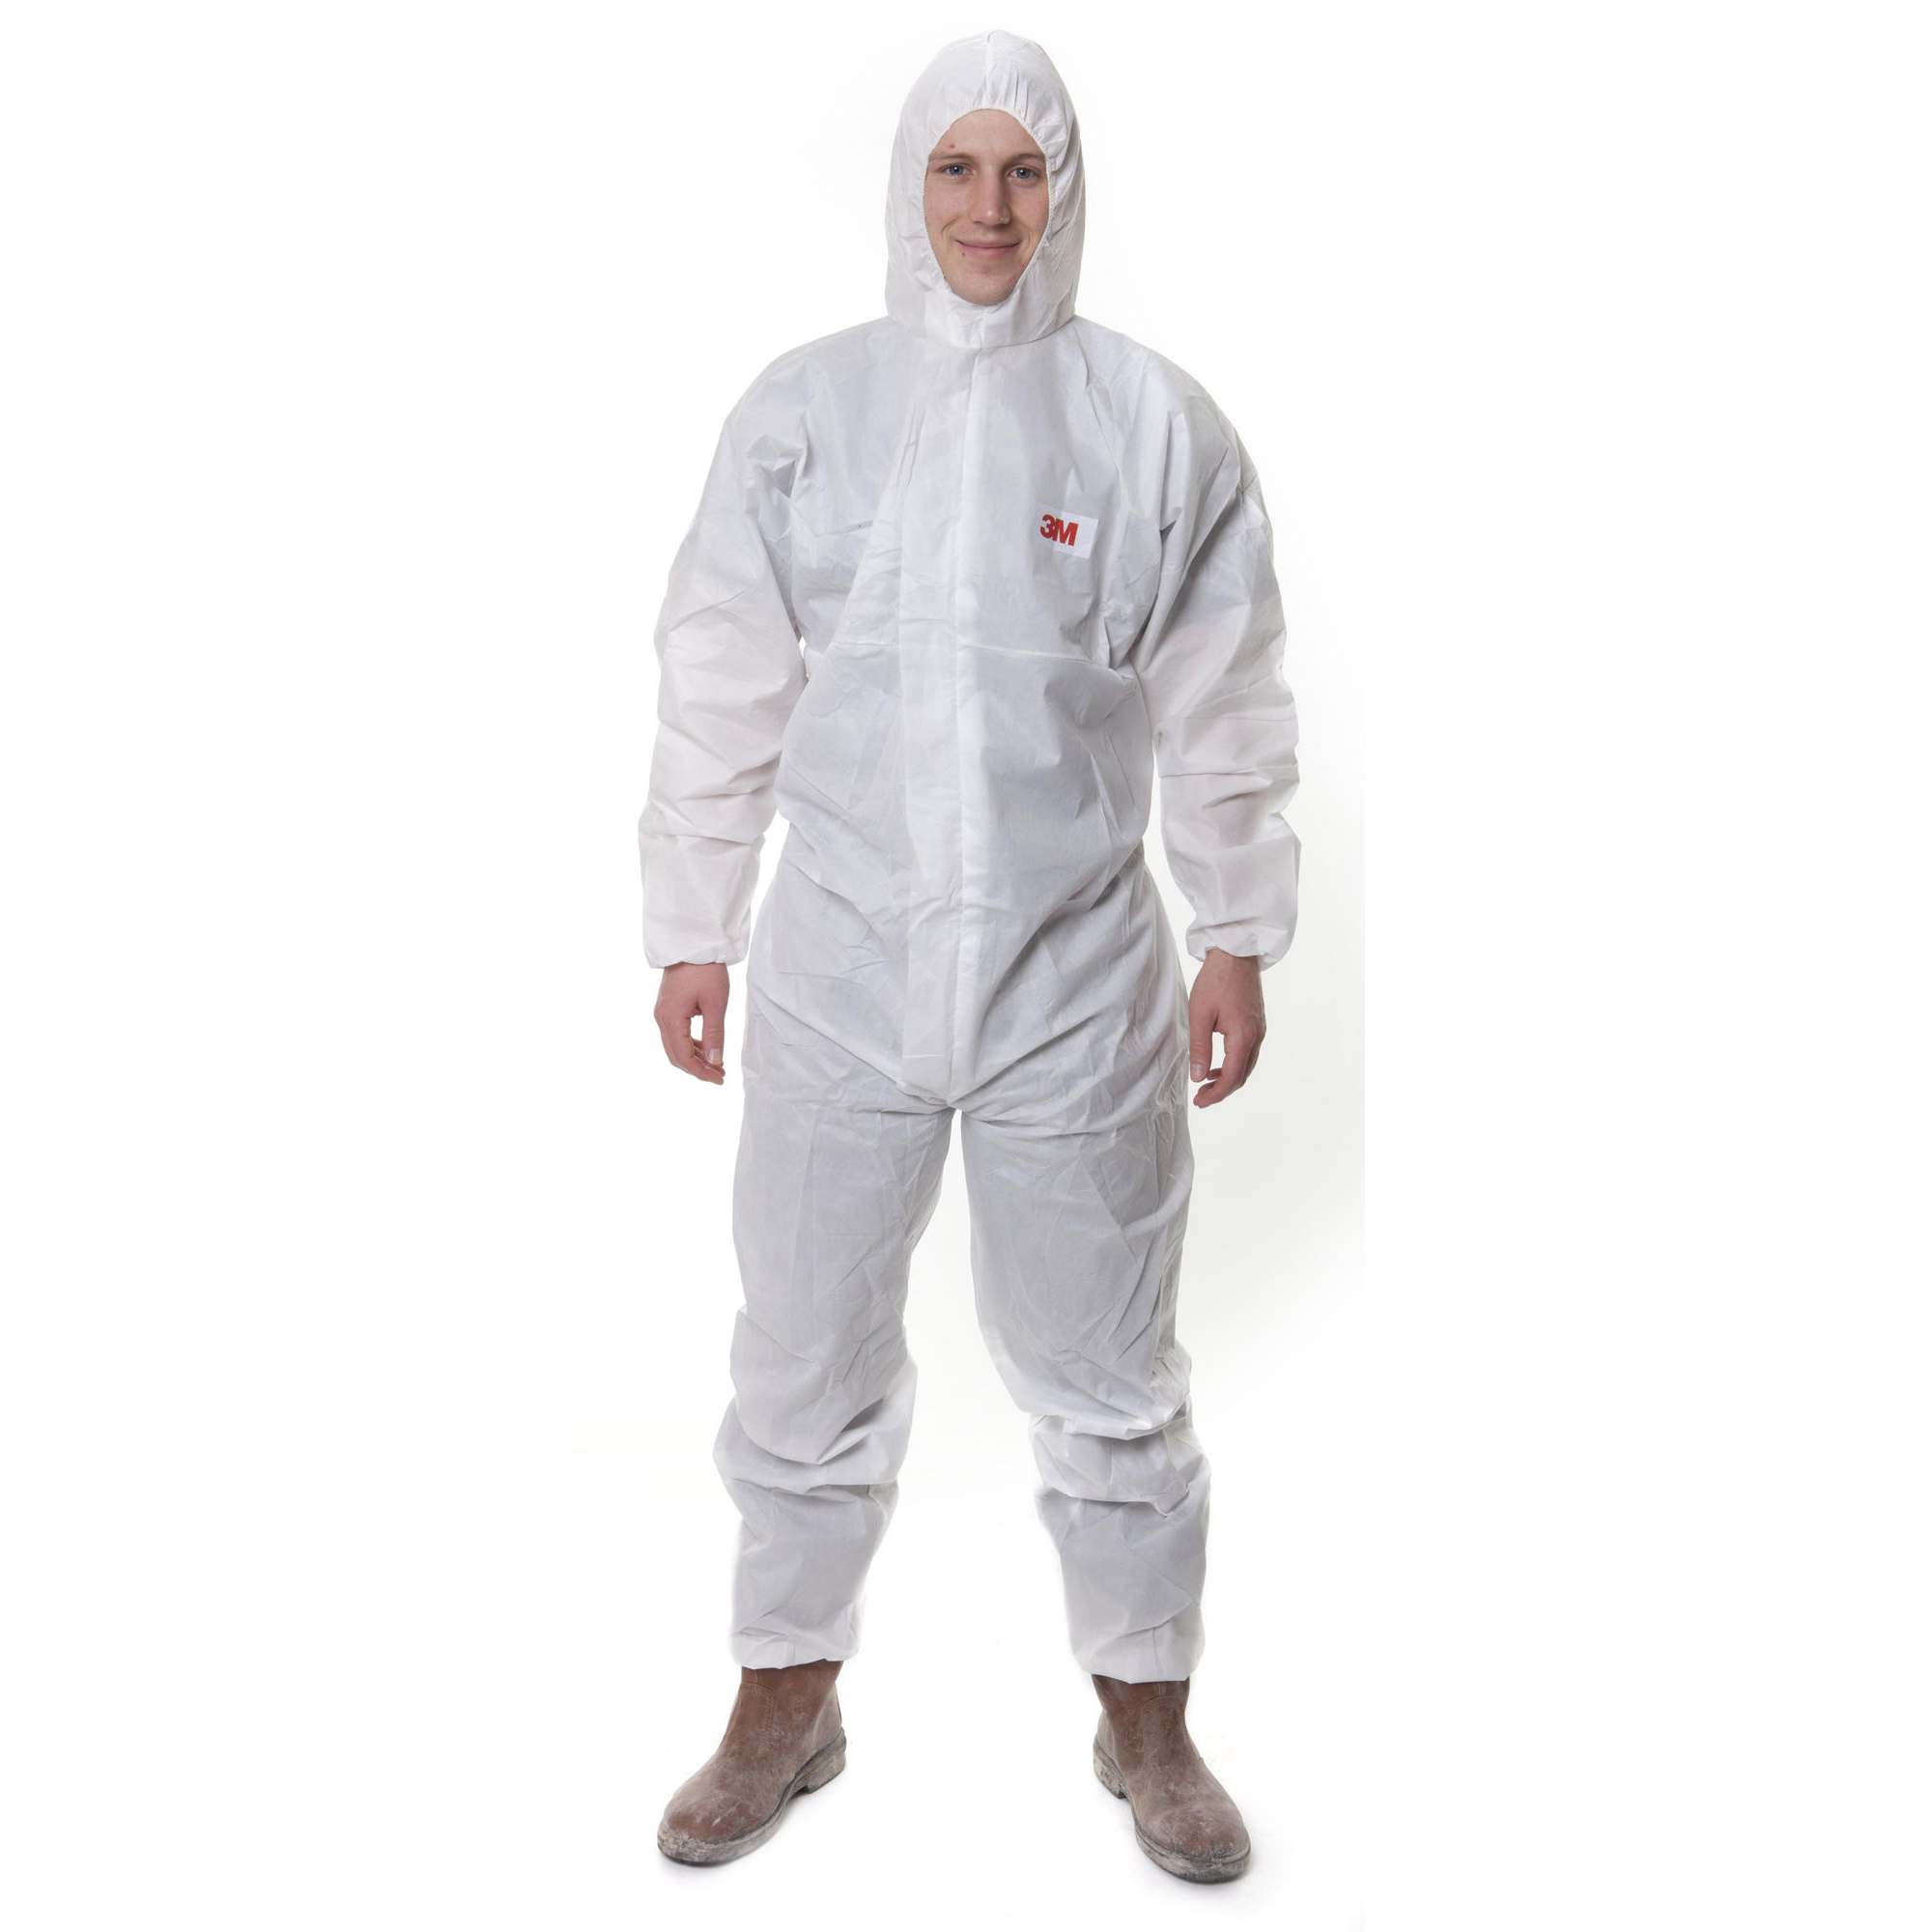 Image for 3M 4515 5/6 Coveralls White Small Ref 4515WS [Pack 20] Up to 3 Day Leadtime